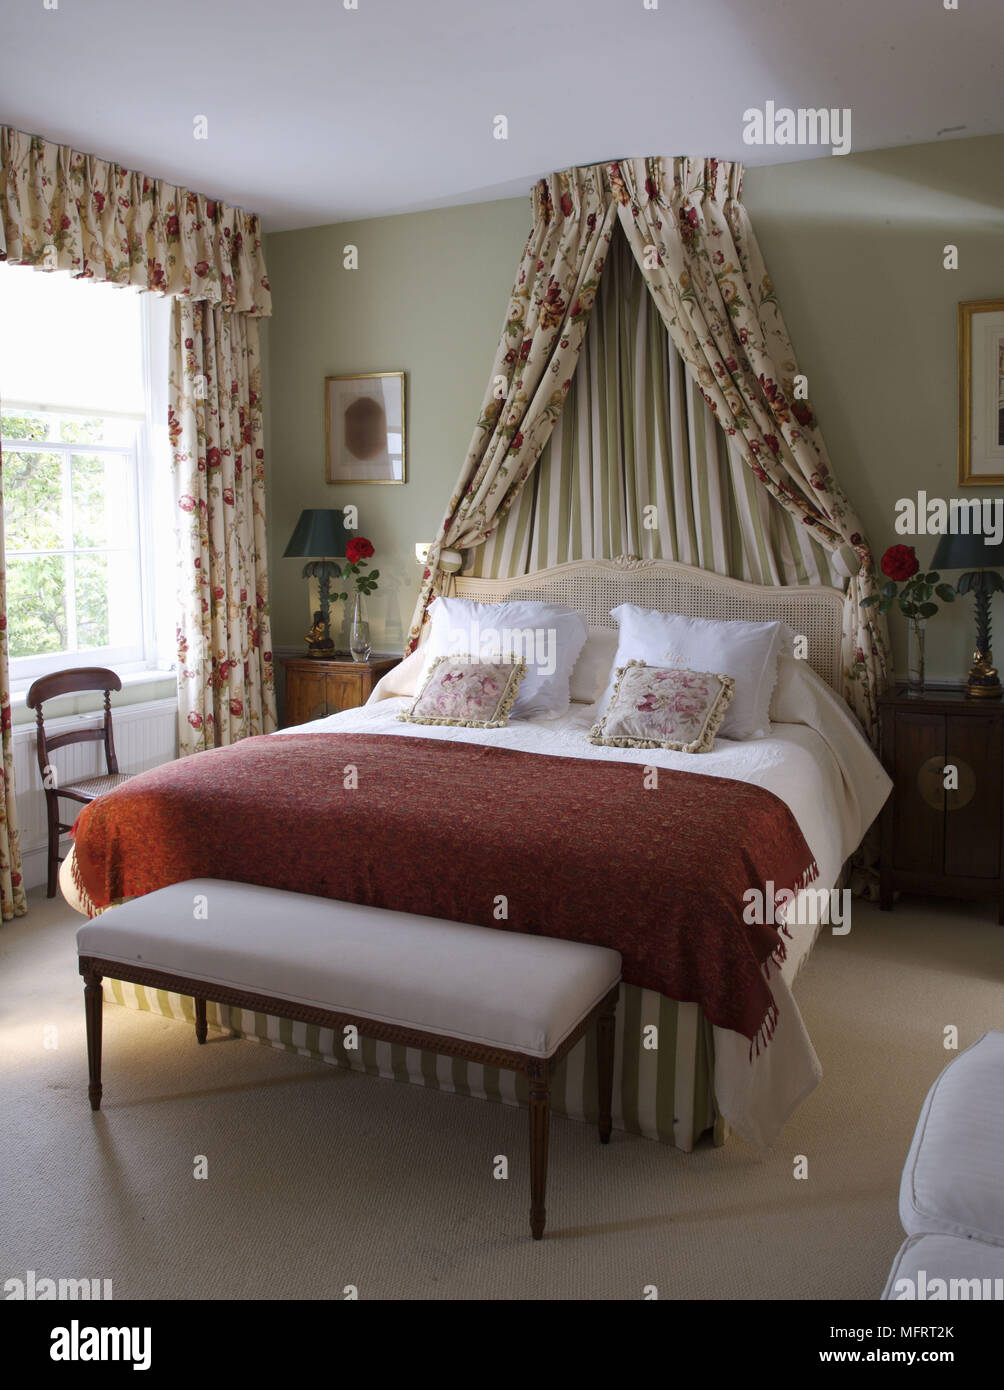 Double bed with floral canopy and coordinating furnishings - Stock Image